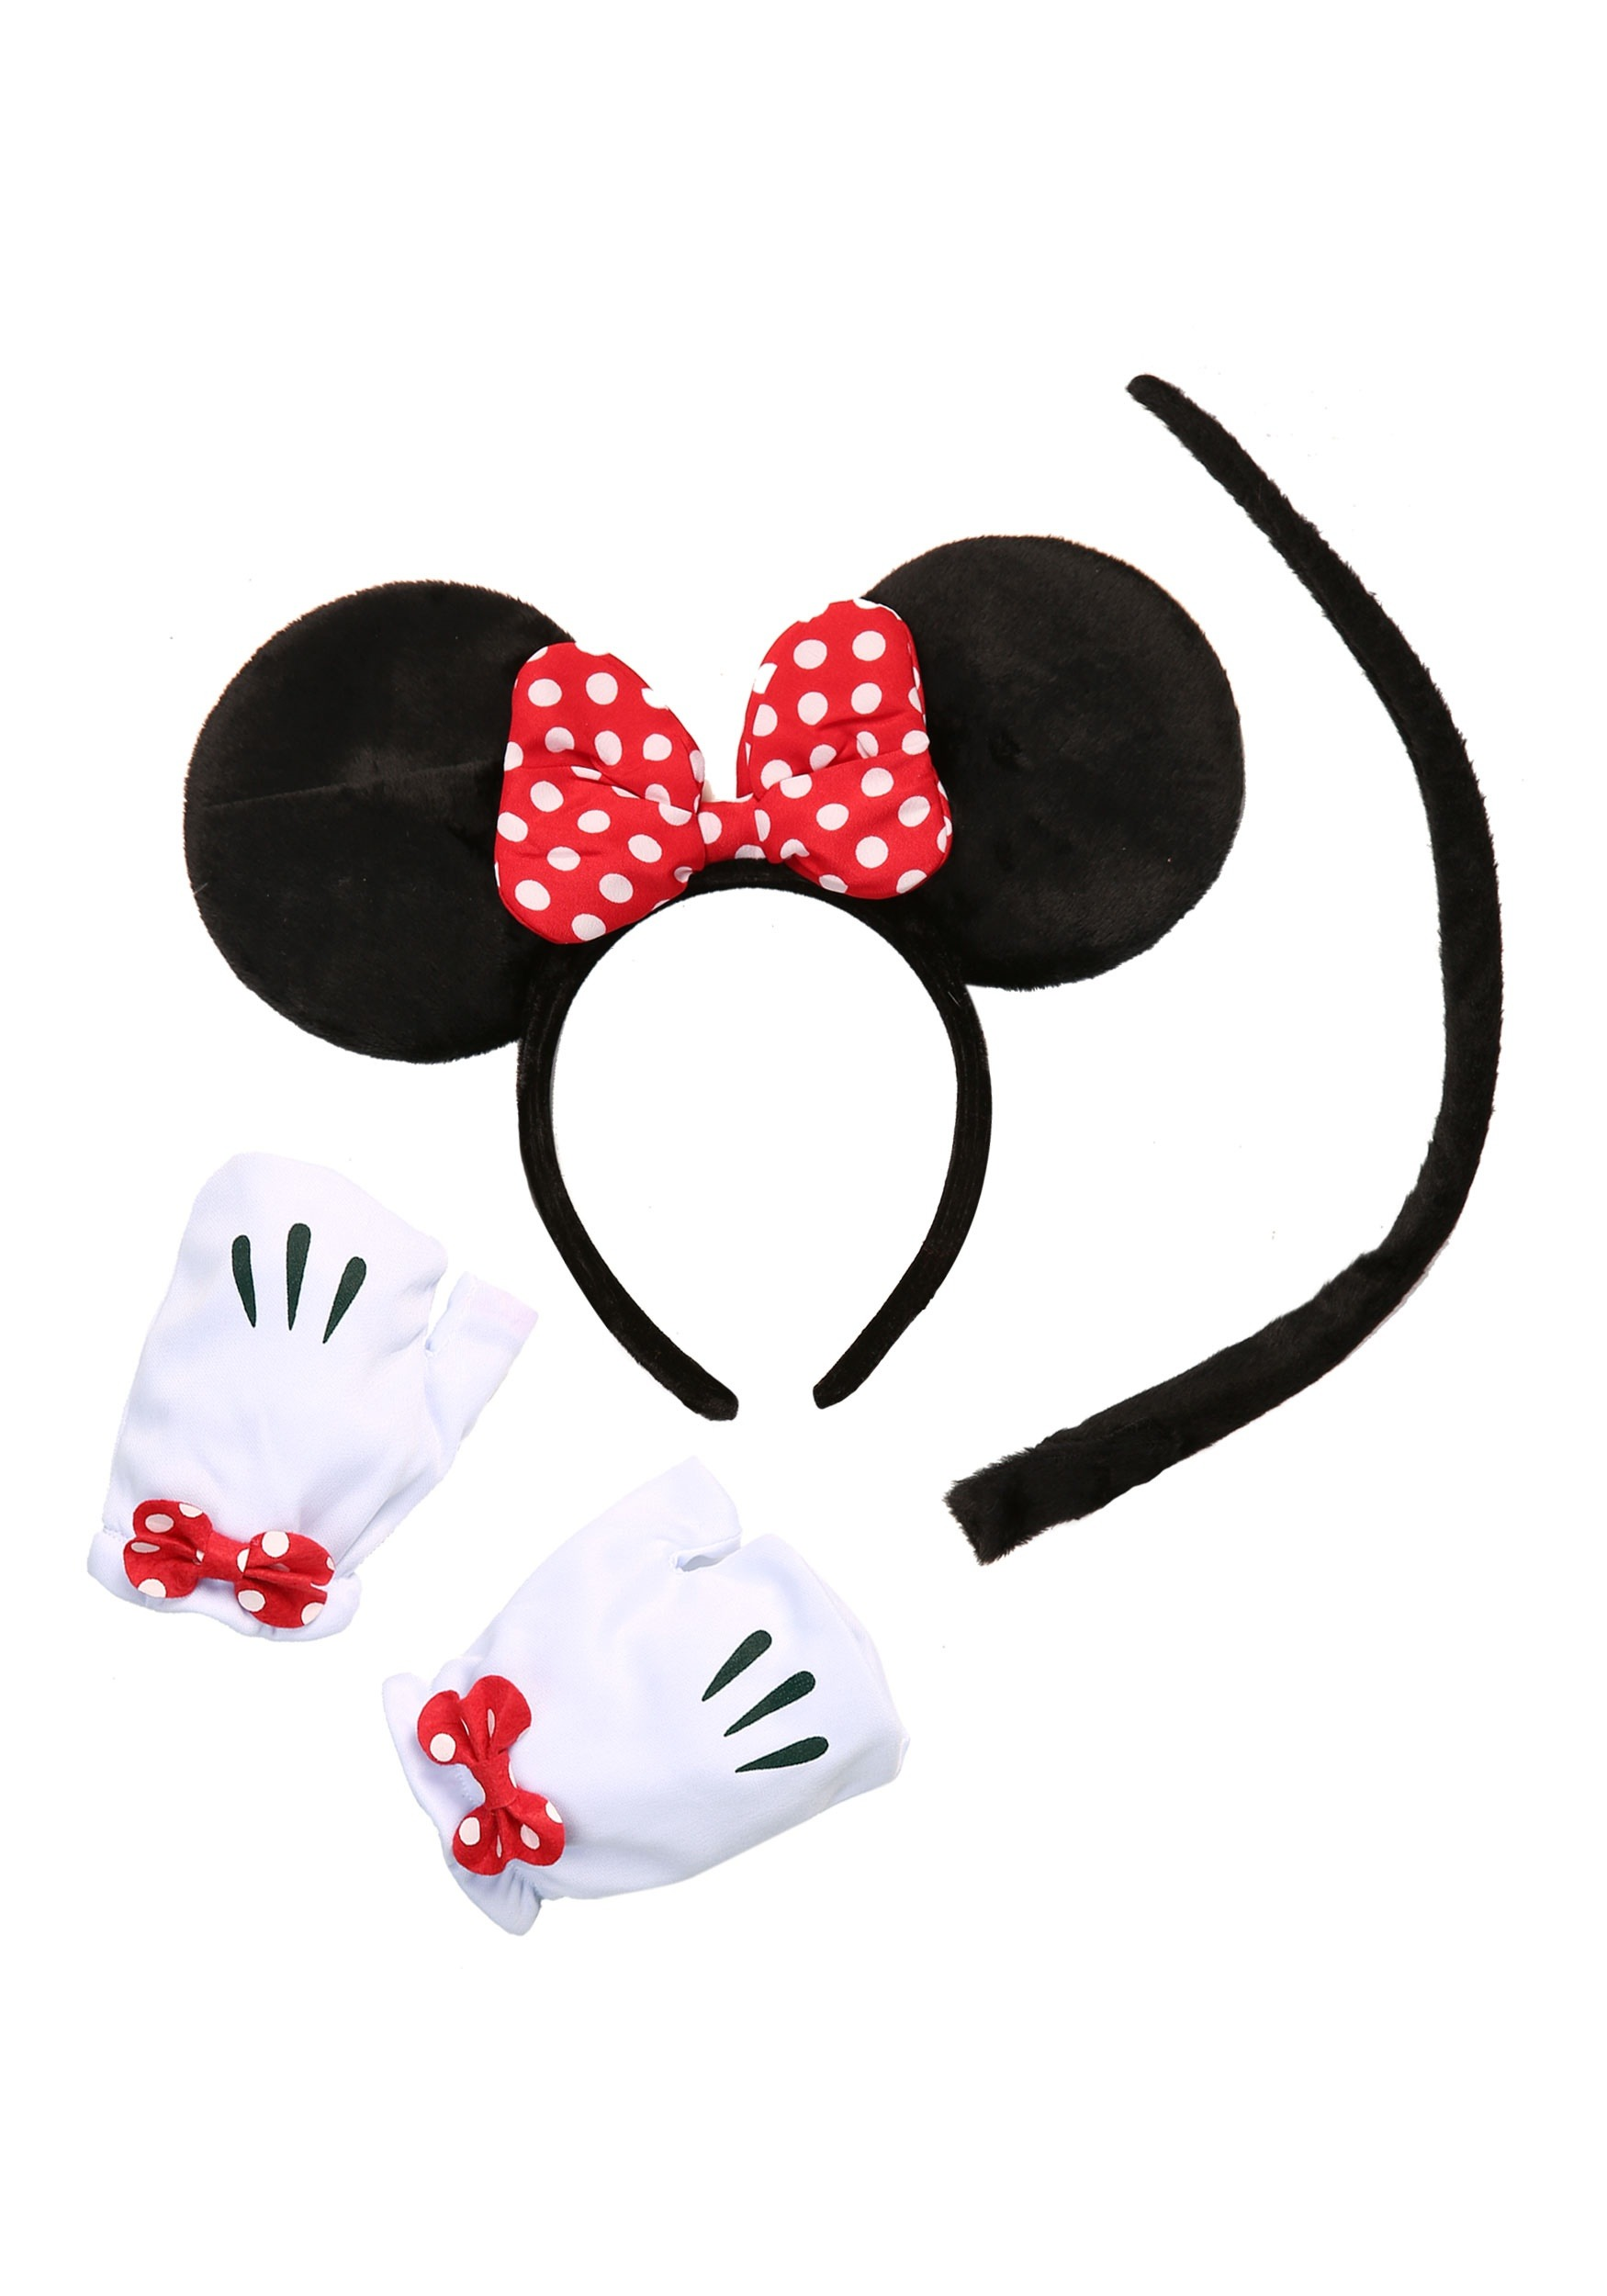 Disney Costume Ideas Minnie Mouse Accessory Kit Minnie Mouse Costumes Disney Costume